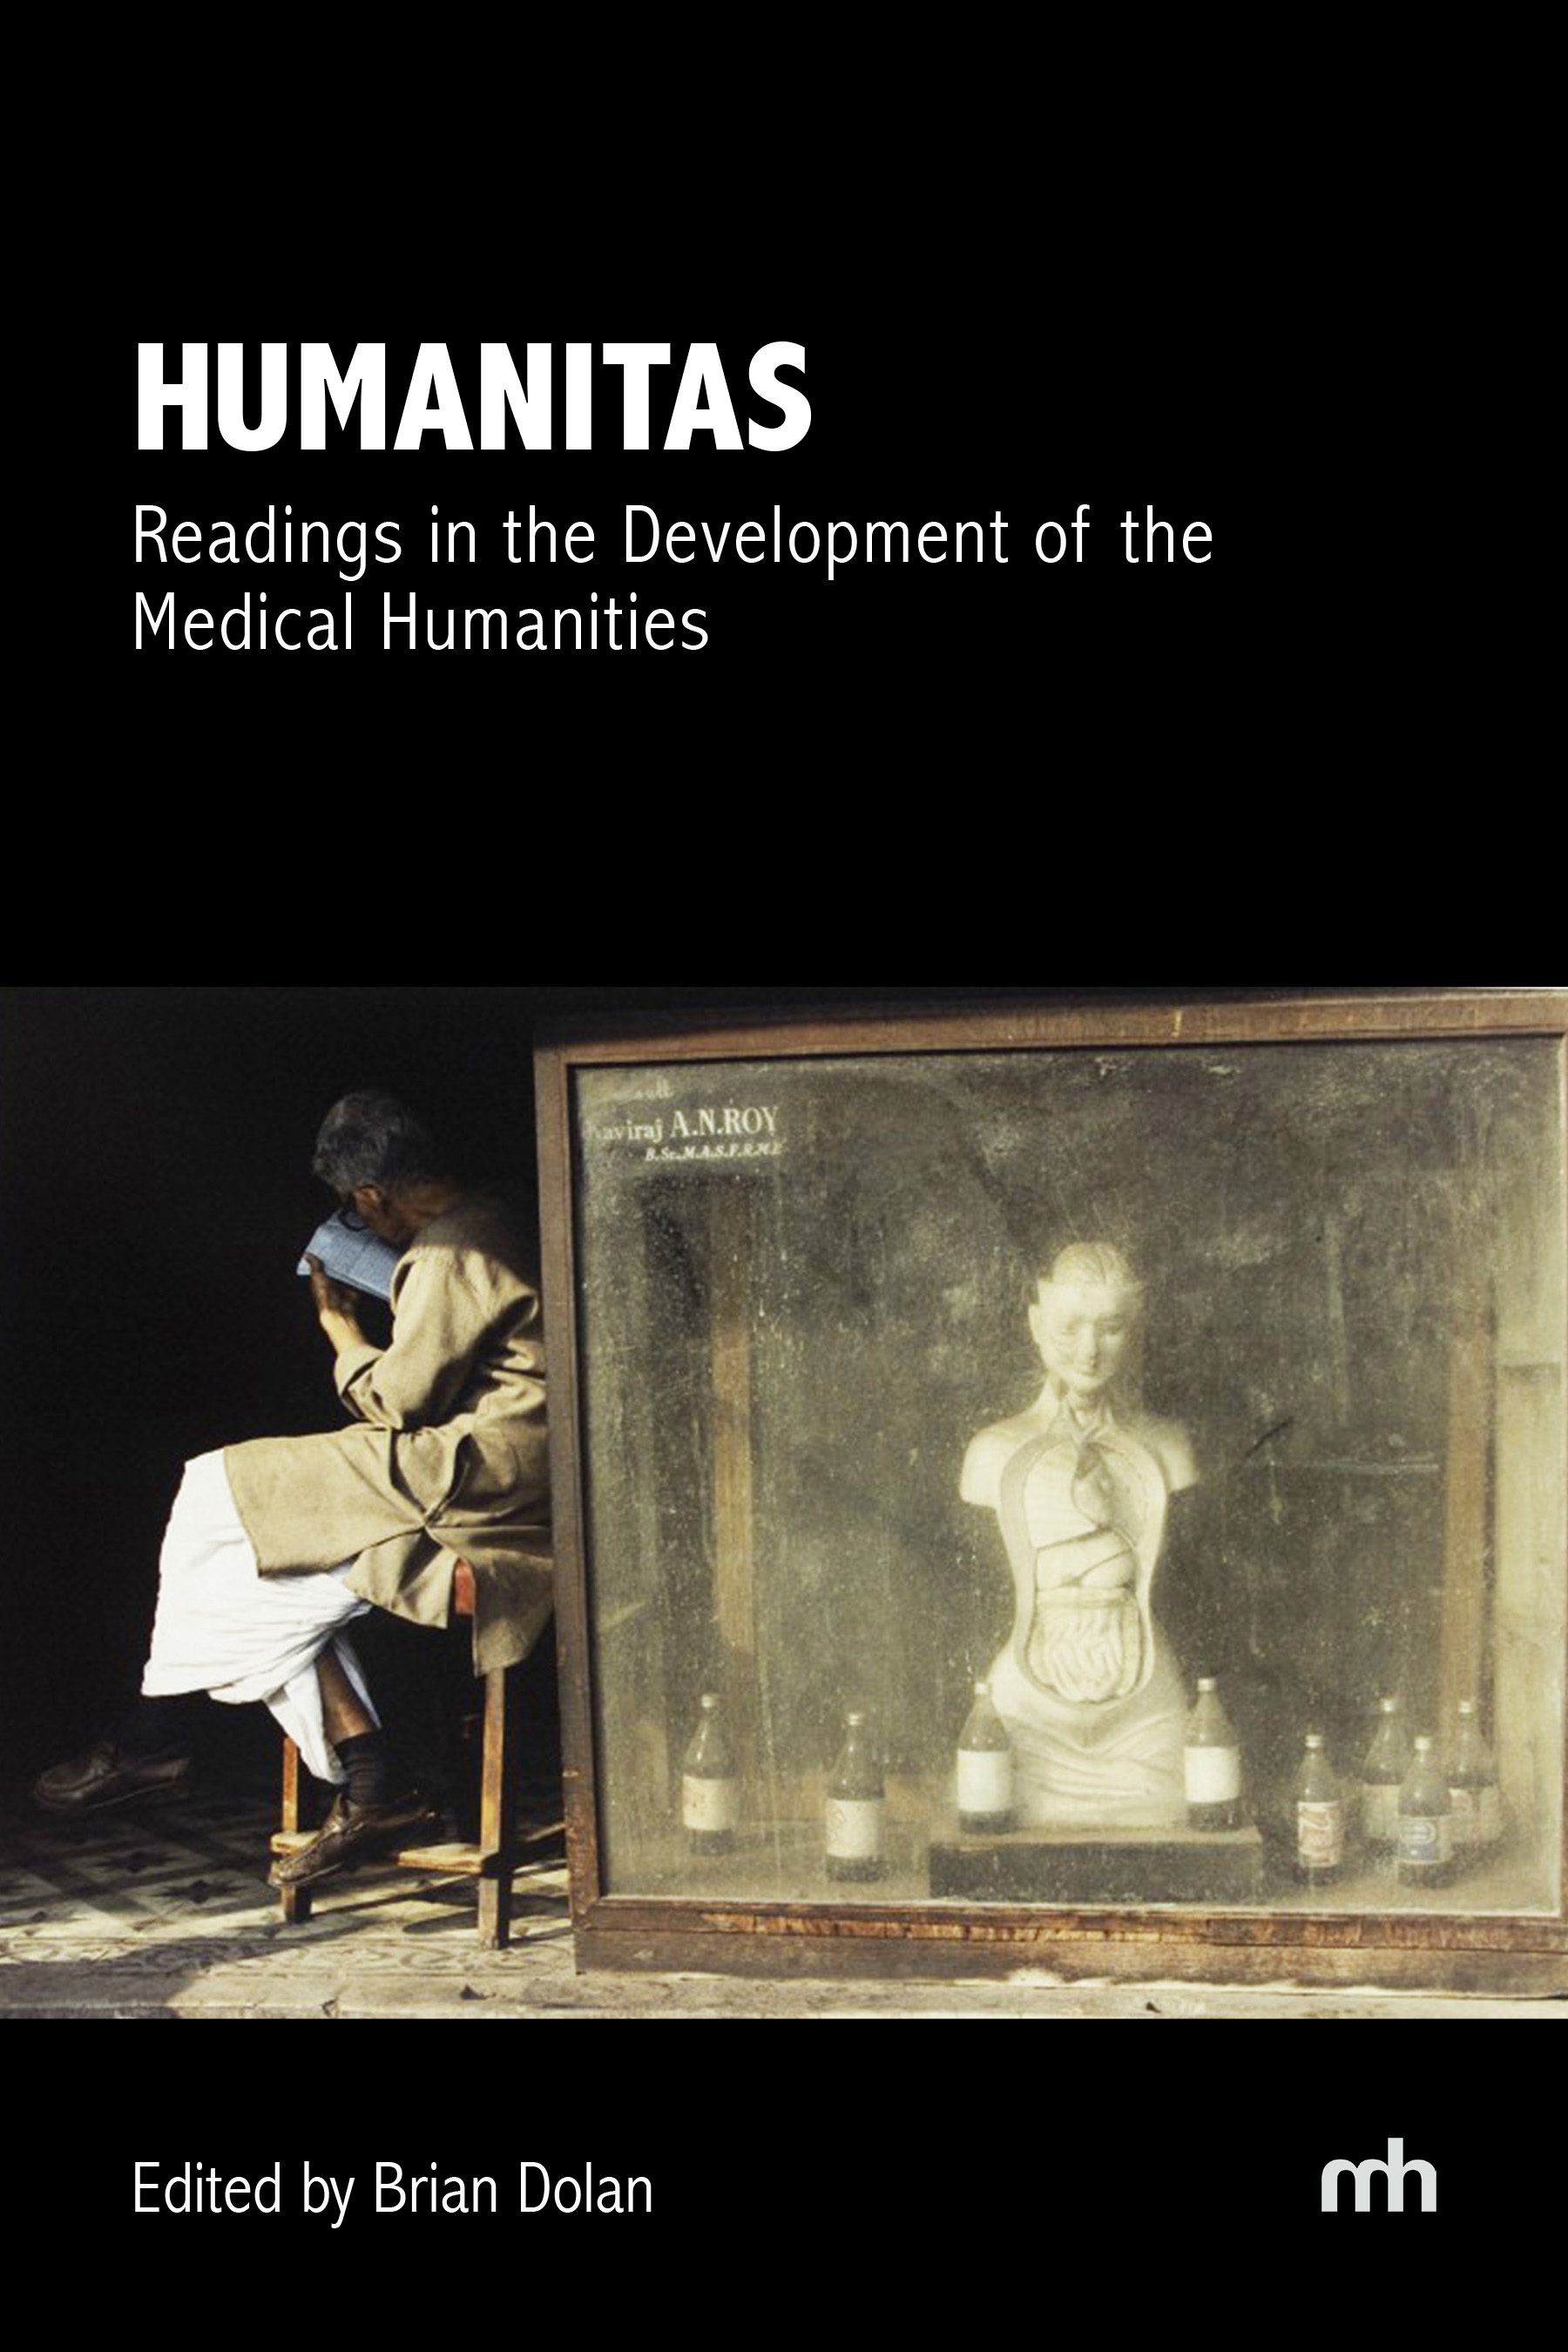 humanitas_cover_front6x9